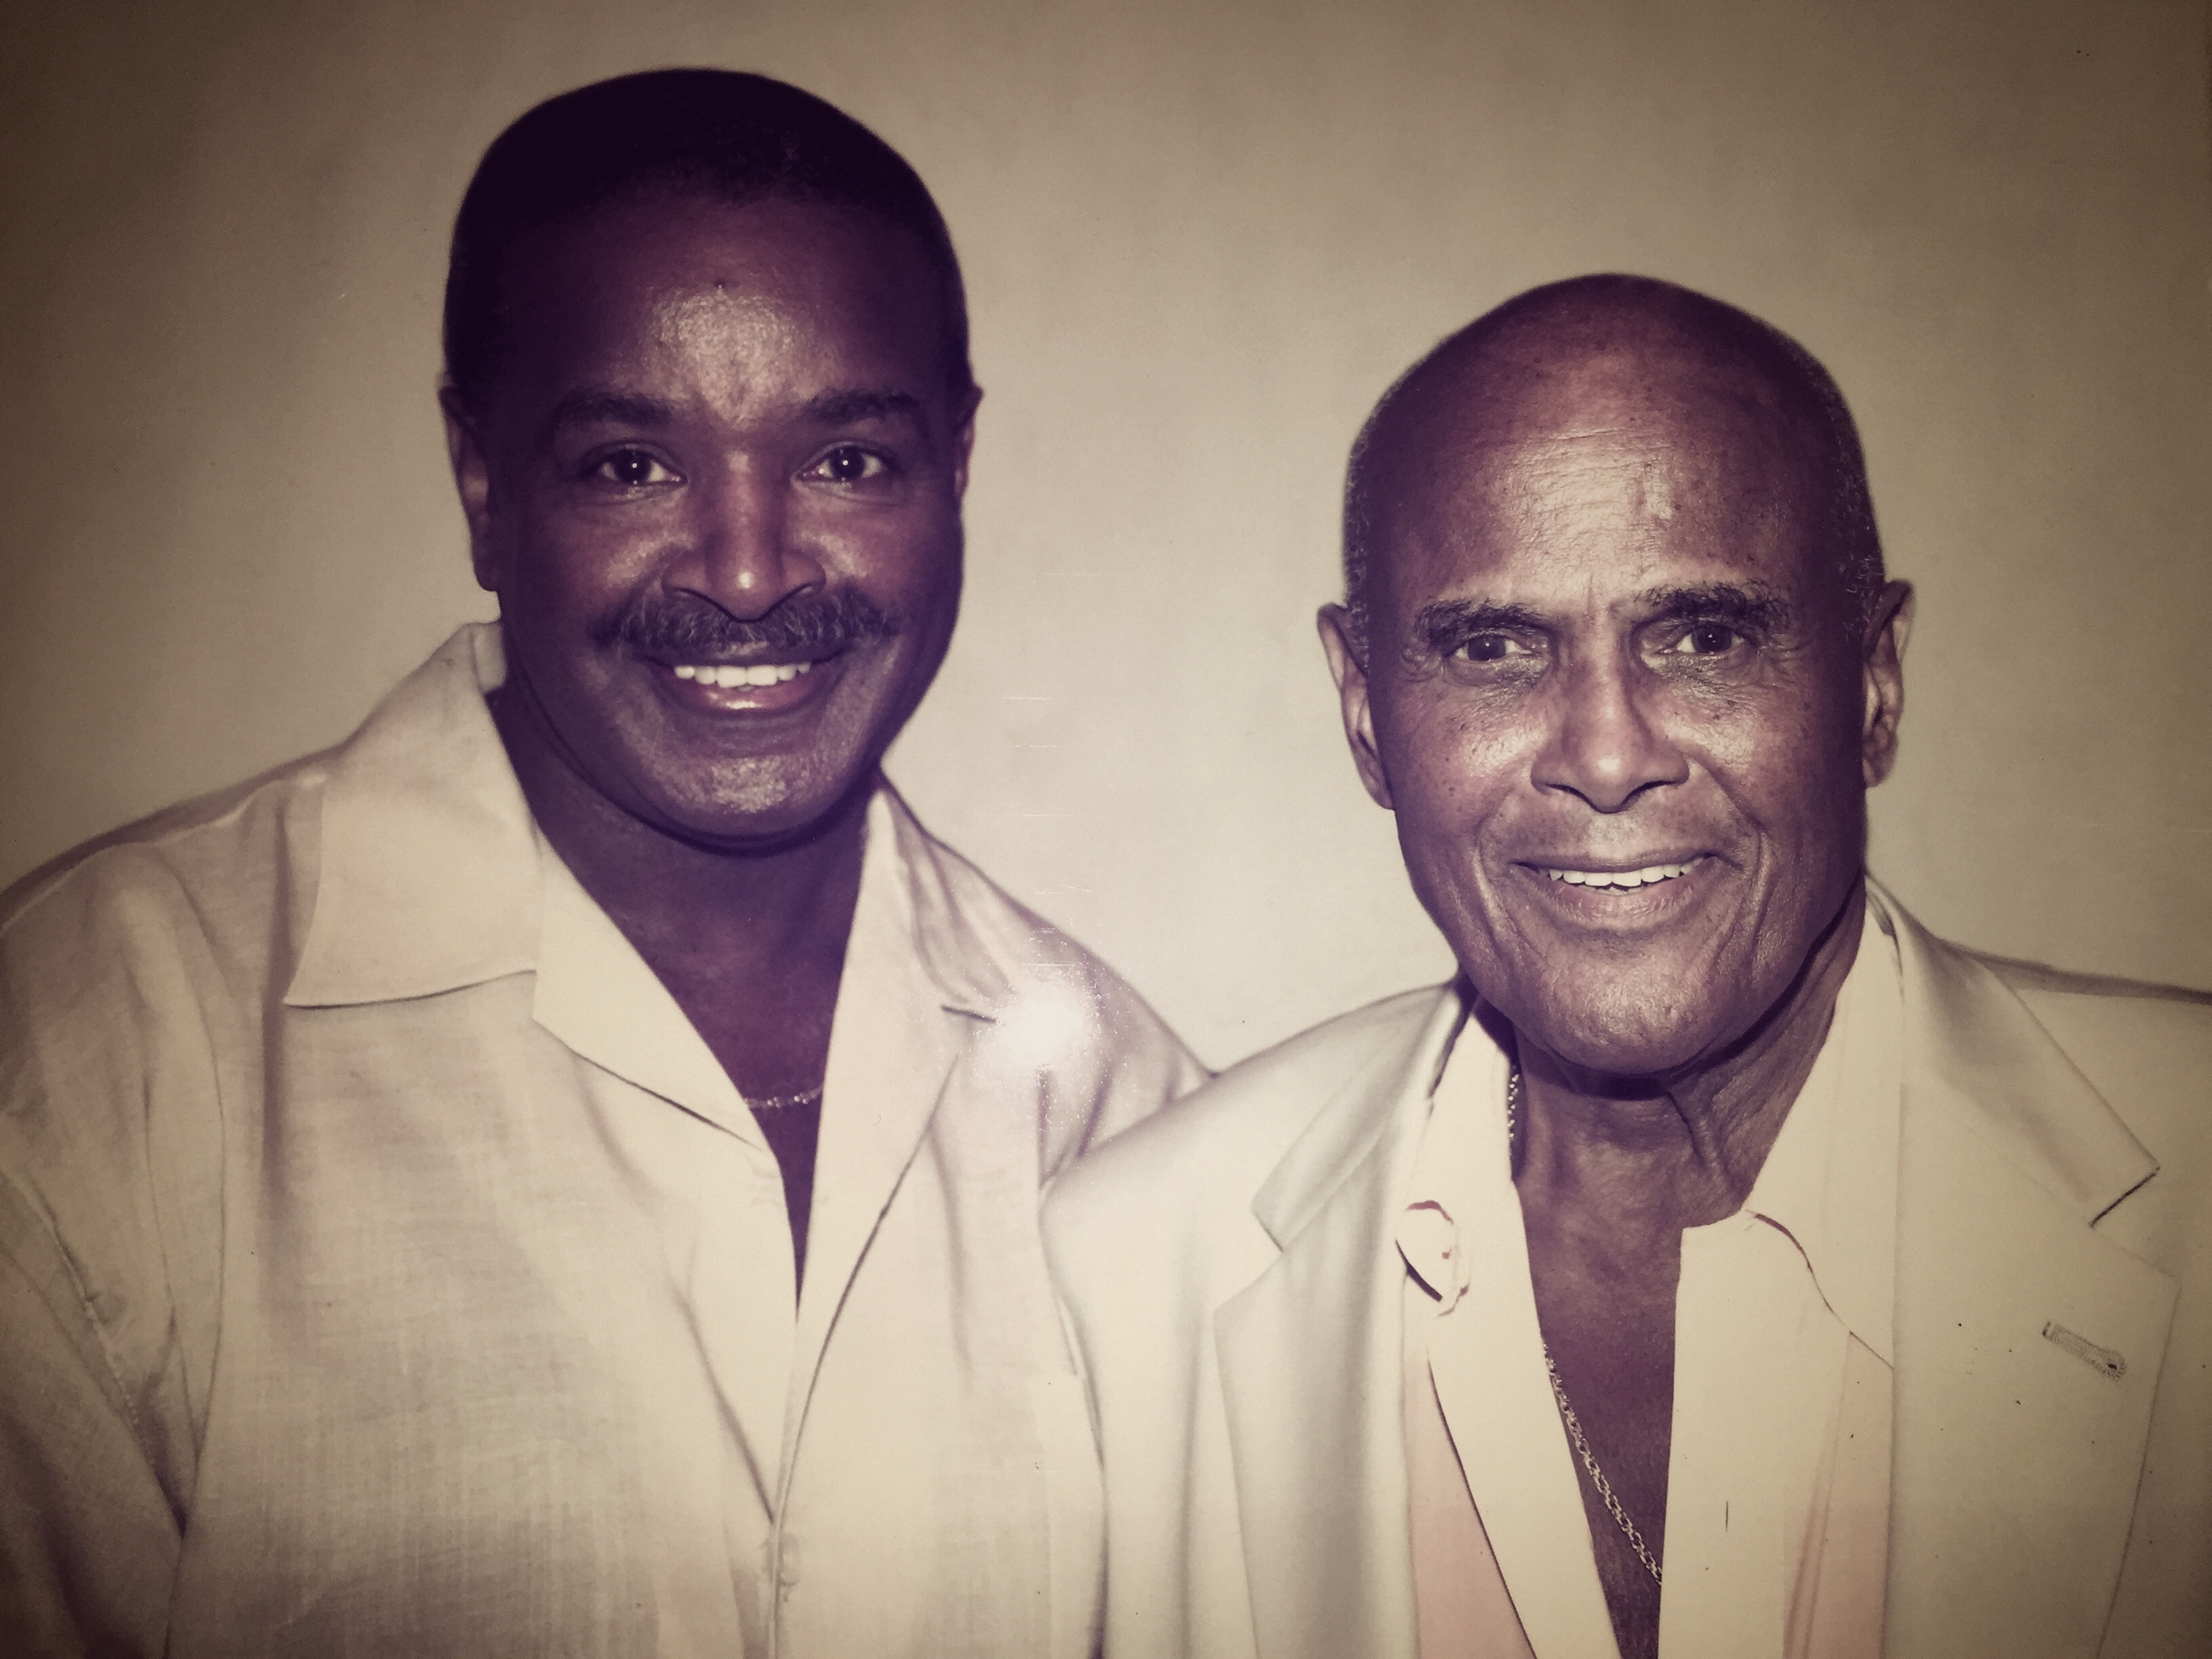 http://geoffreyslive.com/wp-content/uploads/2017/02/Geoffrey-Pete-and-Harry-Belafonte.jpg